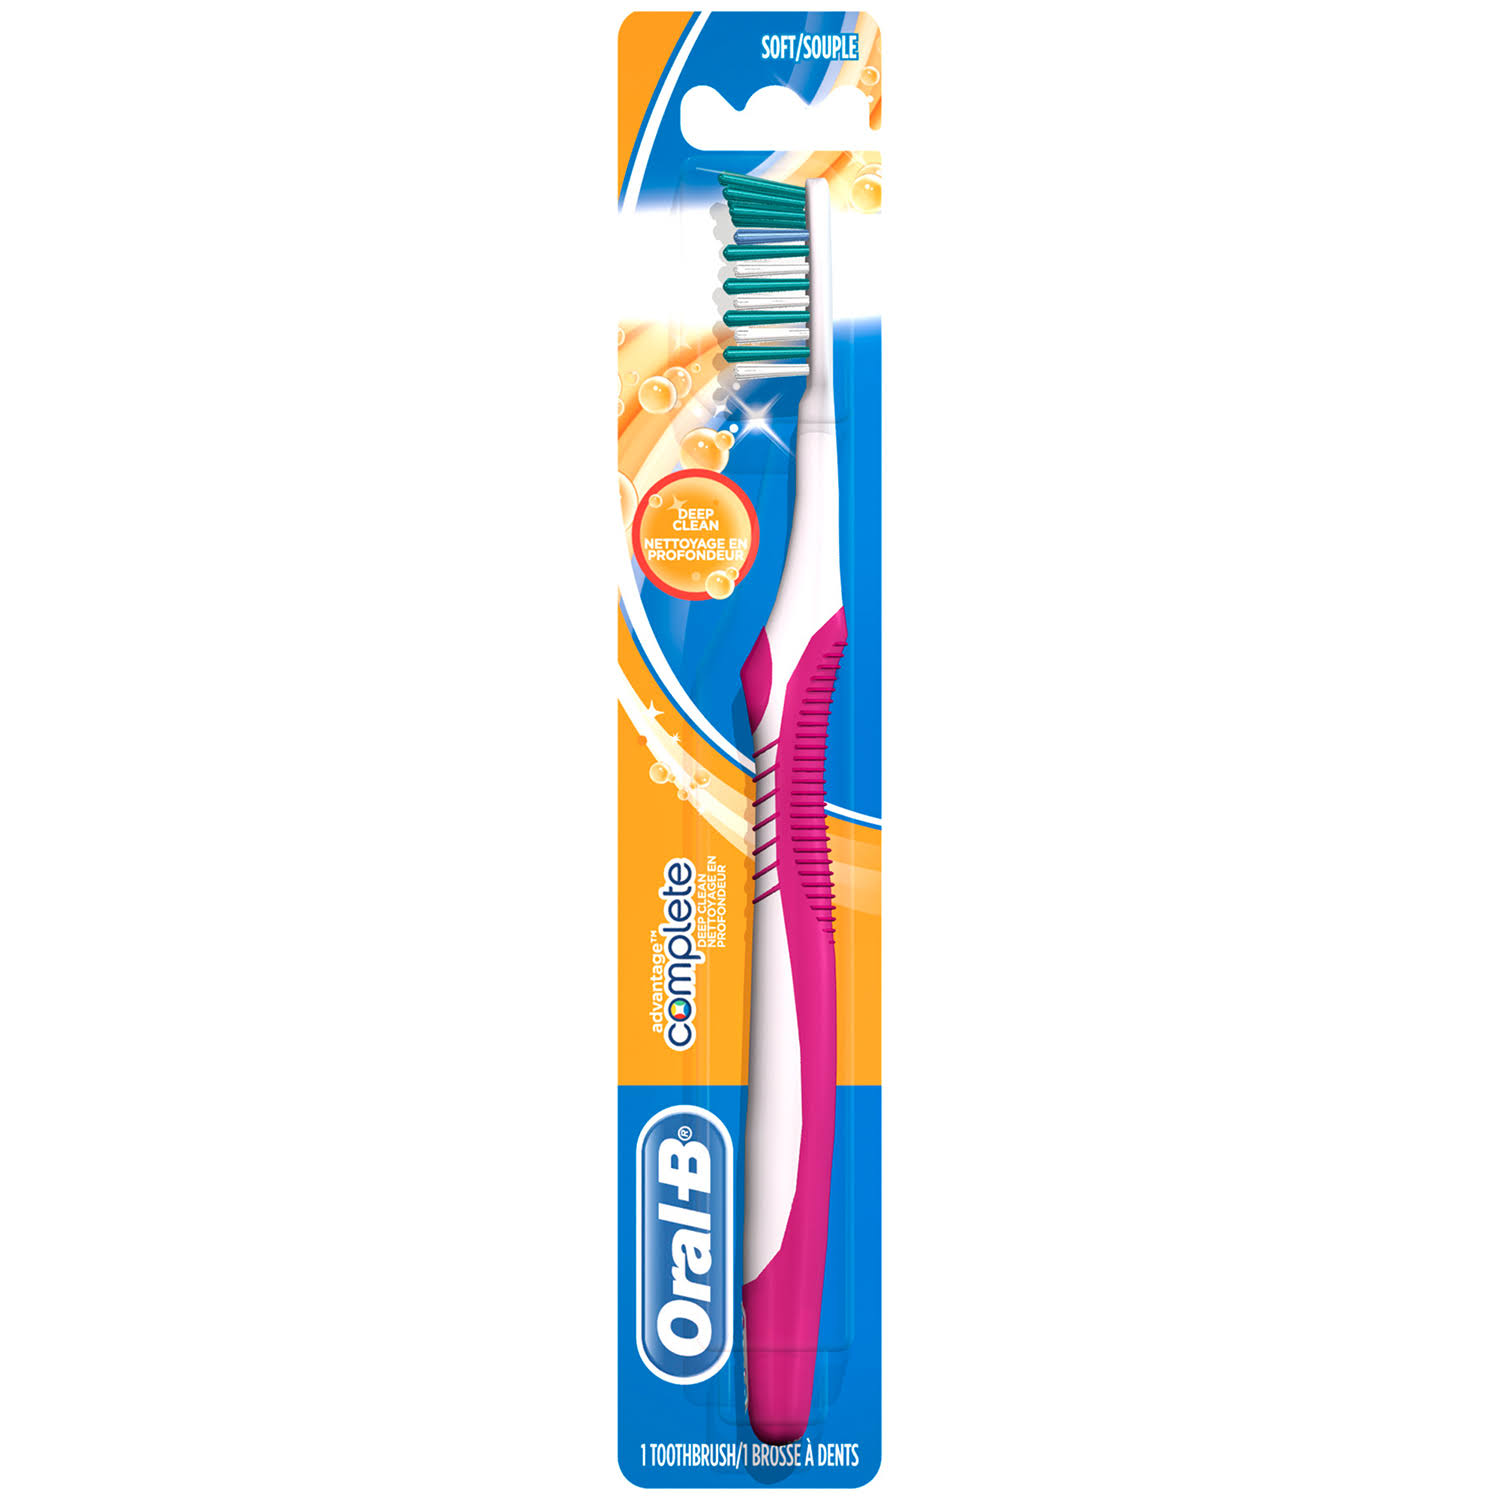 Oral-B Advantage Complete Deep Clean Toothbrush